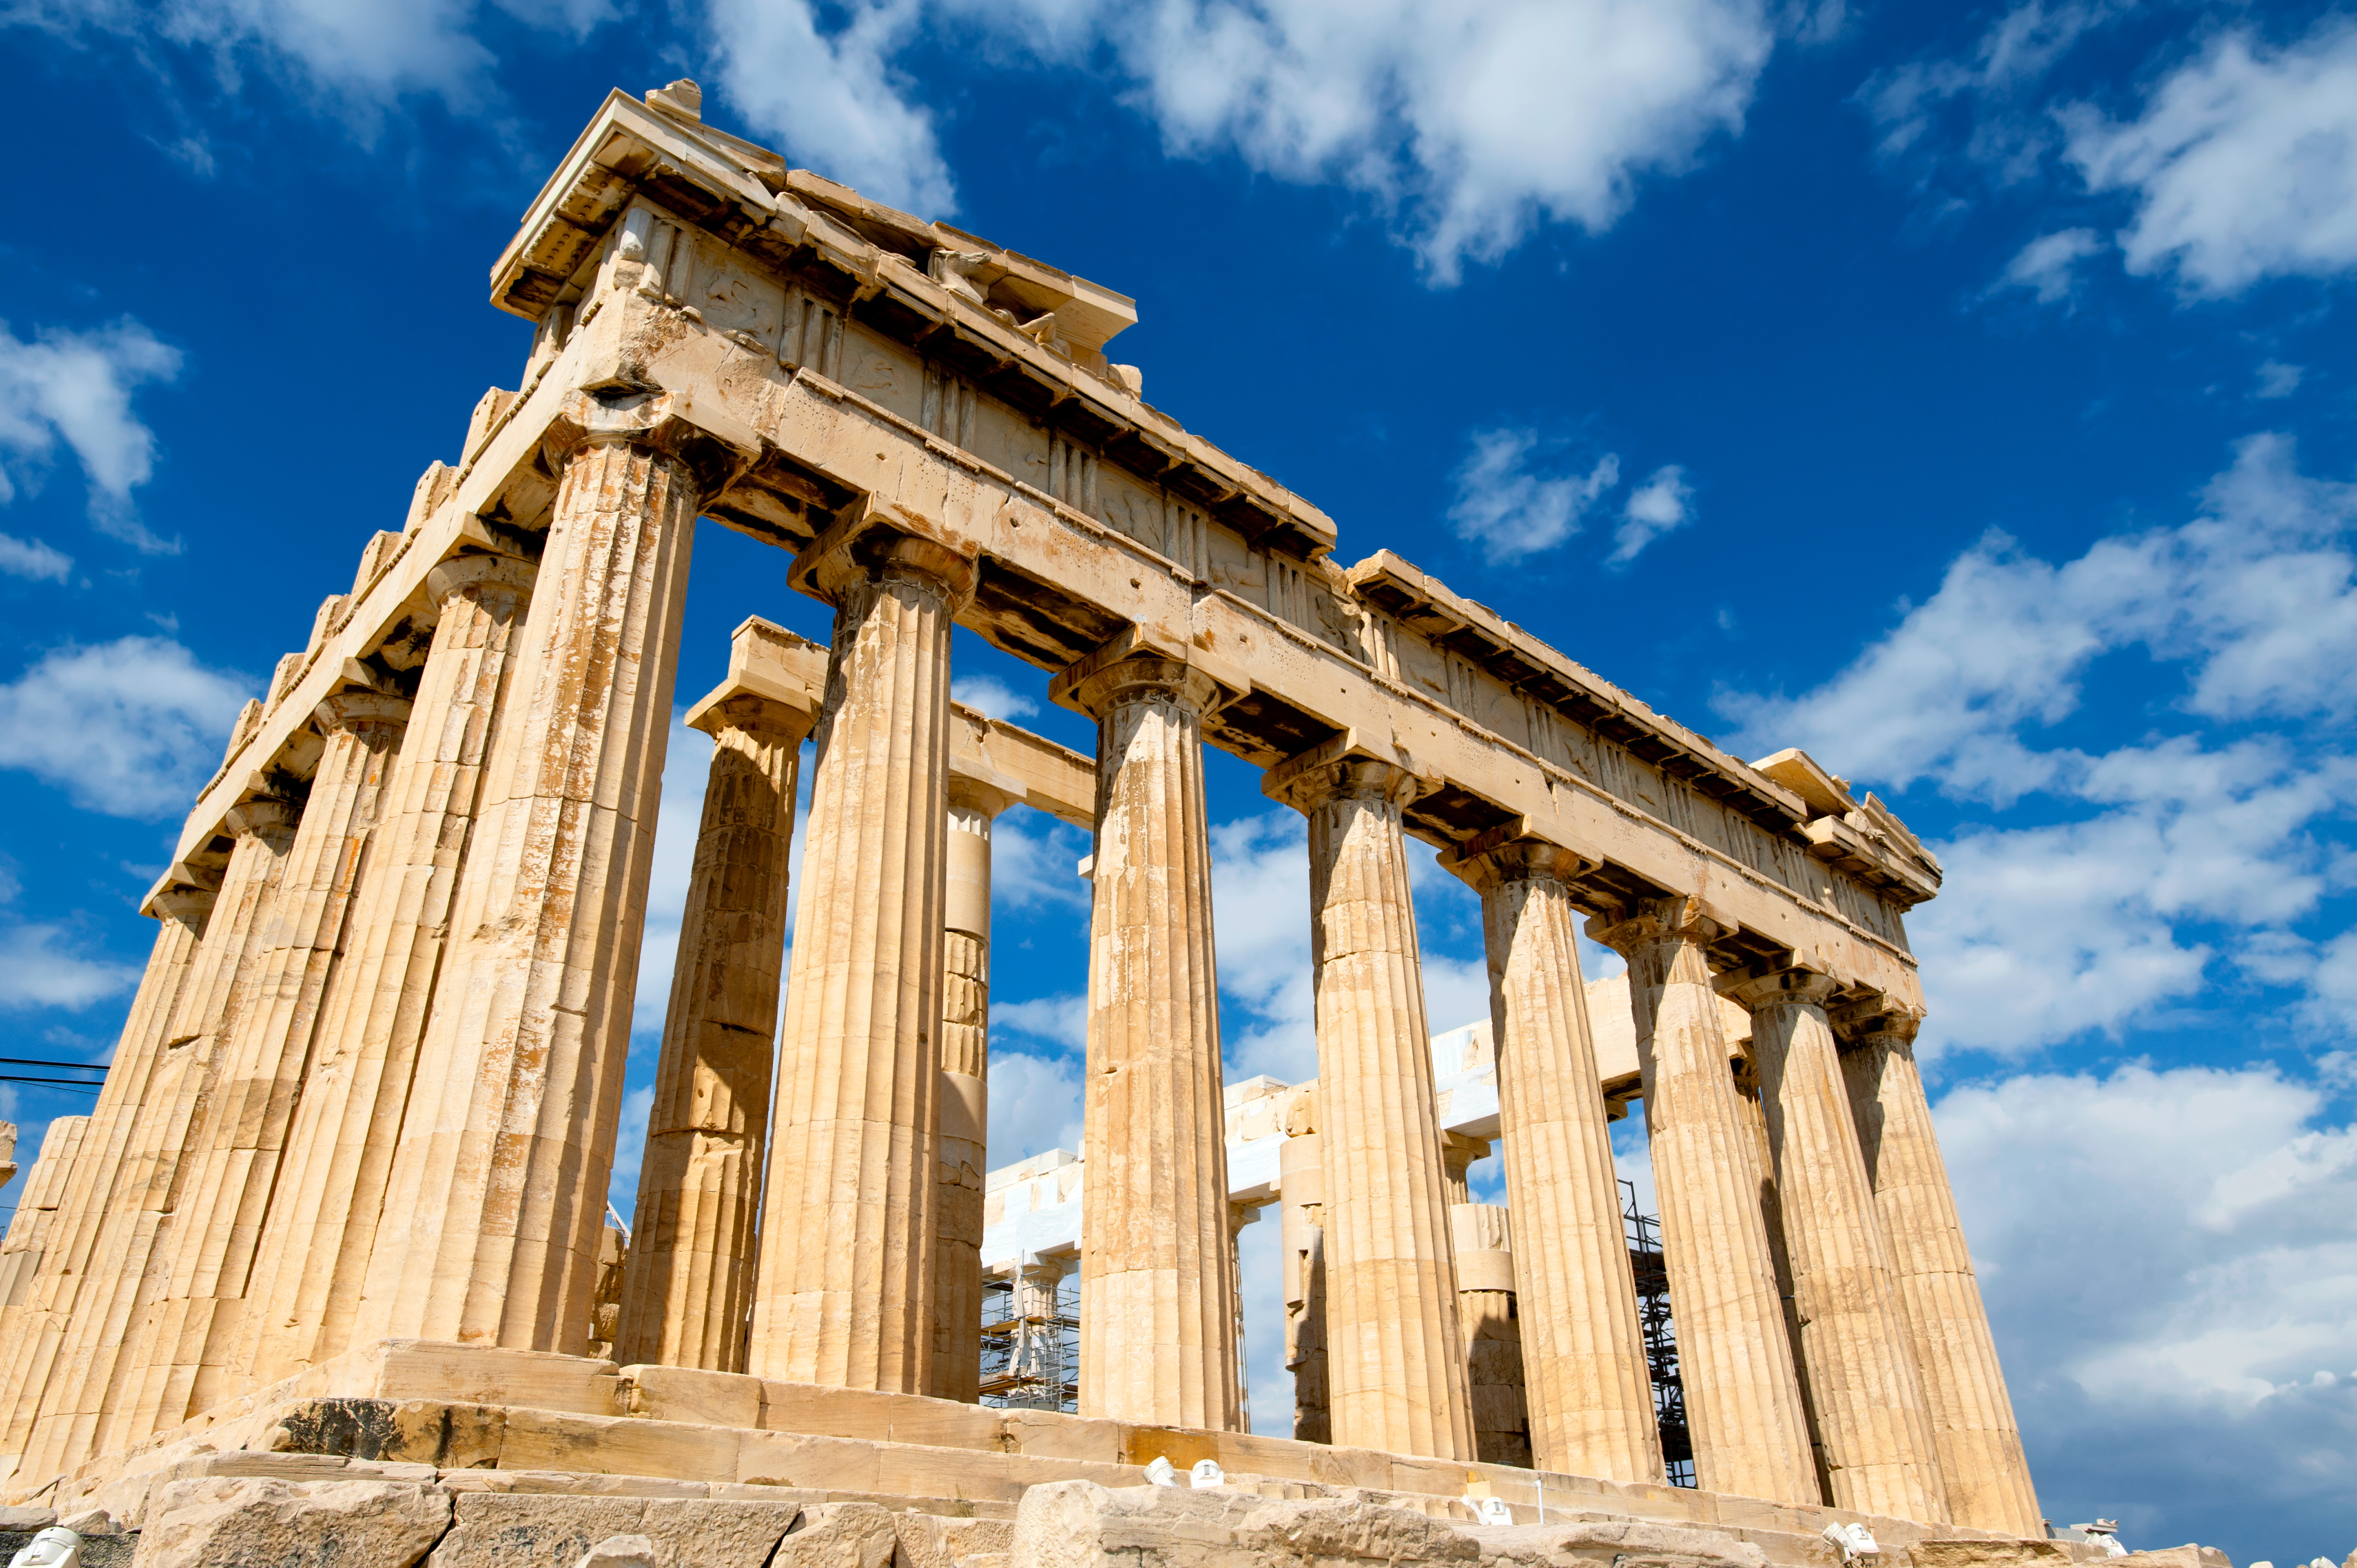 What Did Athen's Parthenon Look Like To Apostle Paul?